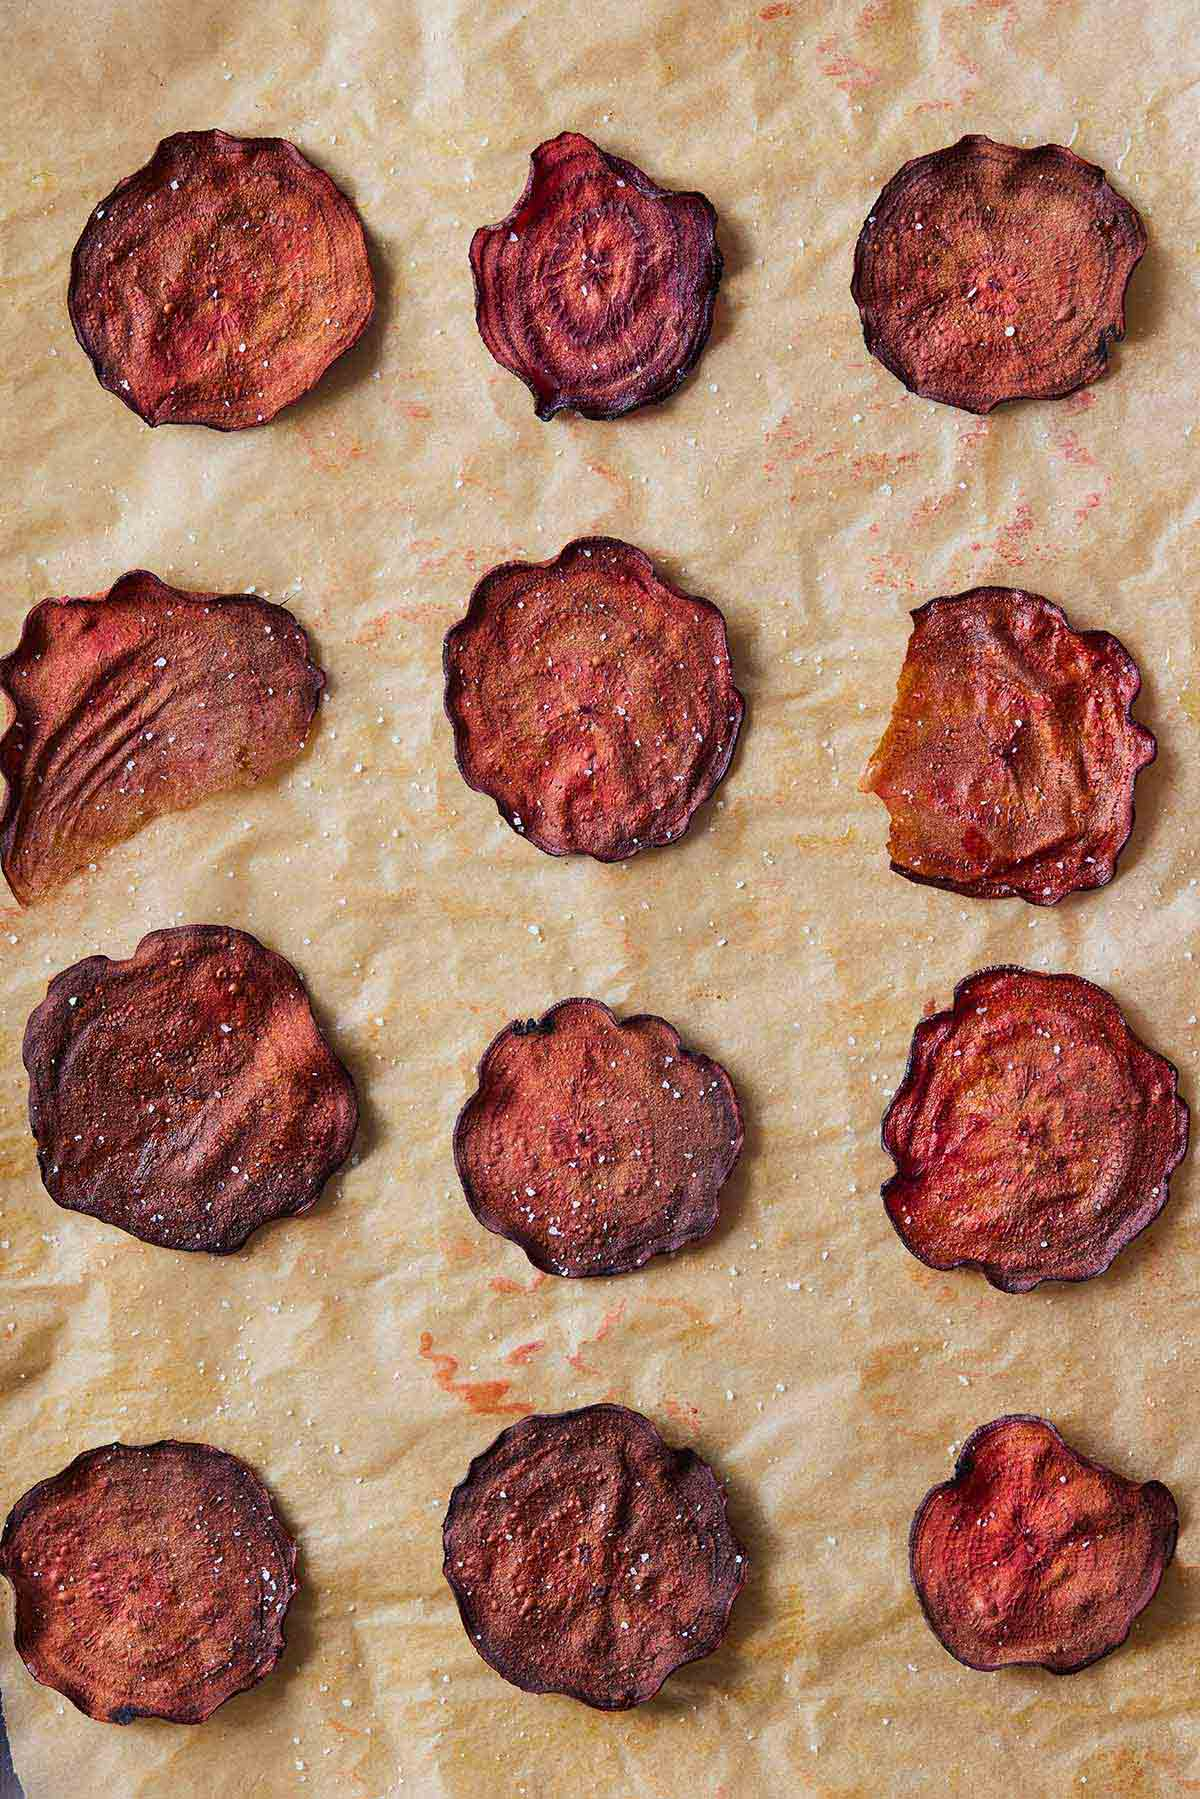 Overhead view of a parchment paper with 12 beet chips placed on top.